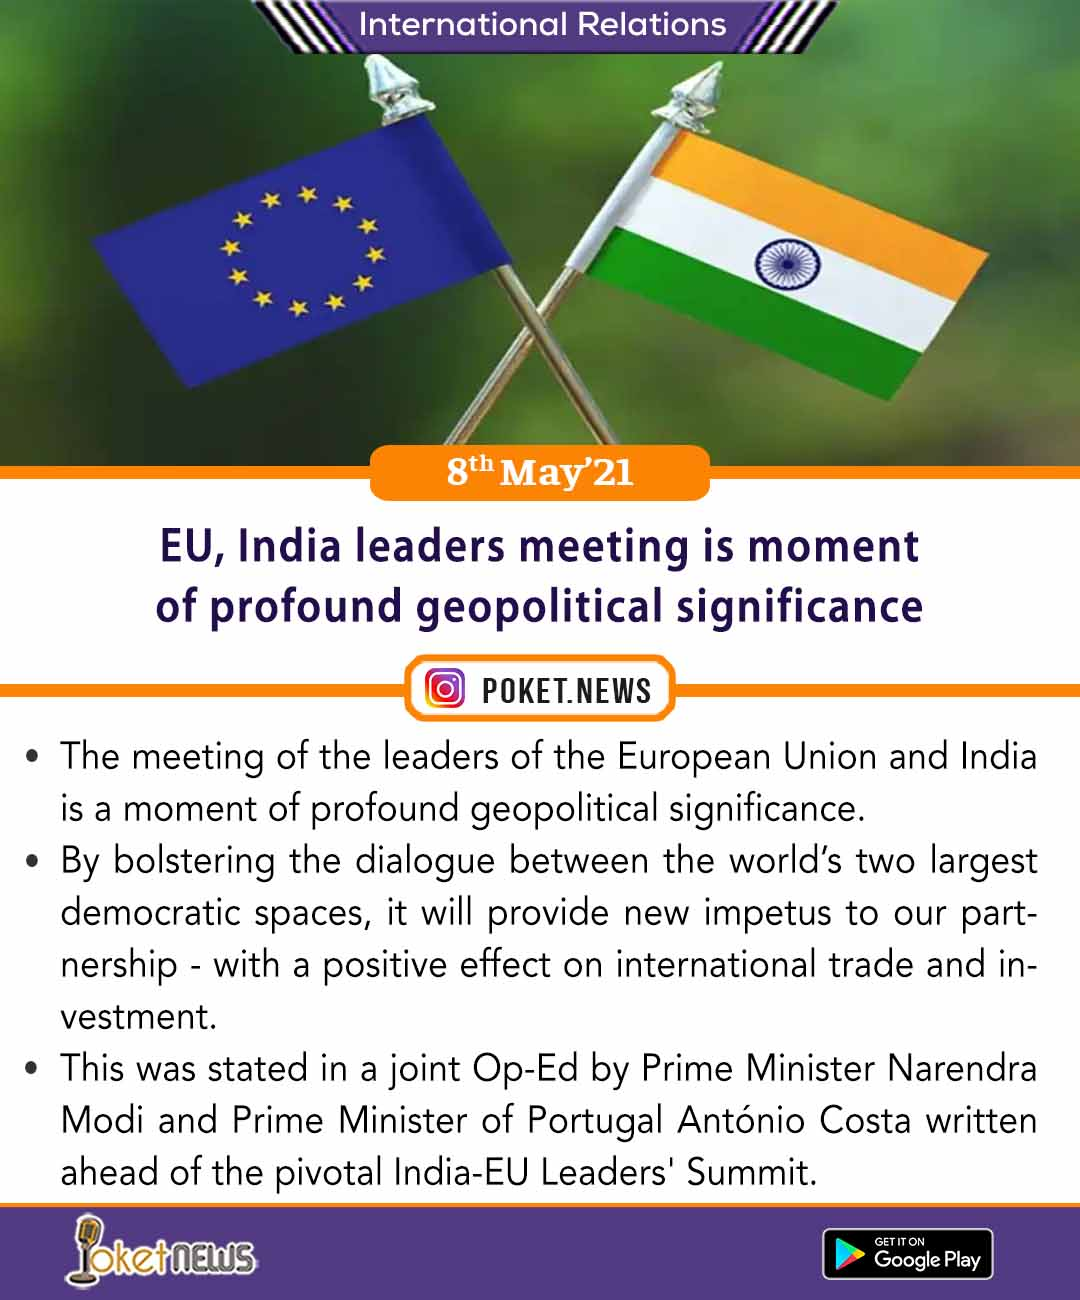 EU, India leaders meeting is moment of profound geopolitical significance